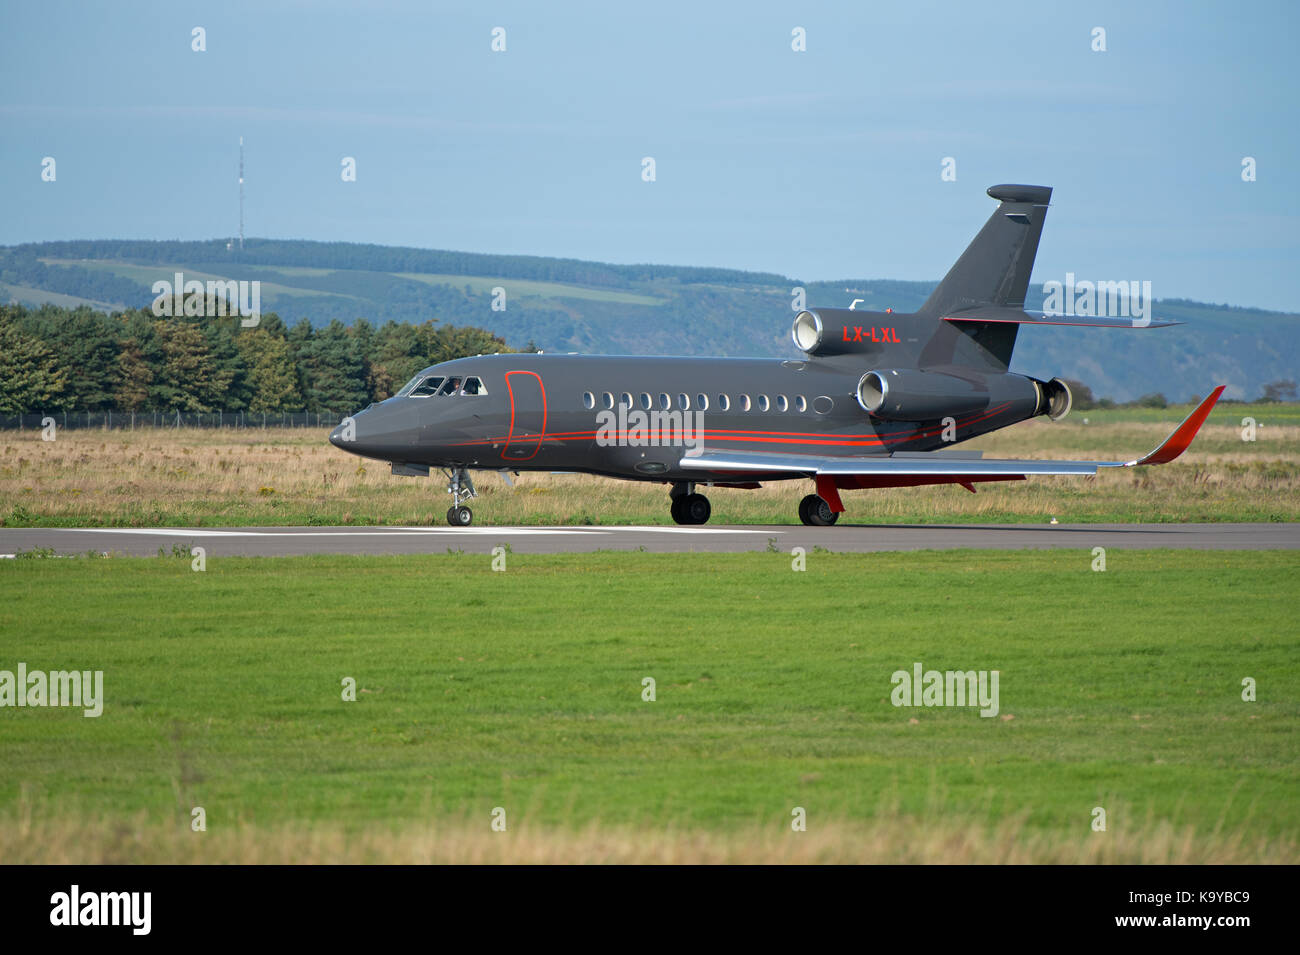 A French built Dassault 900EX Falcon business jet arriving at Inverness Airport in the sunshine. - Stock Image